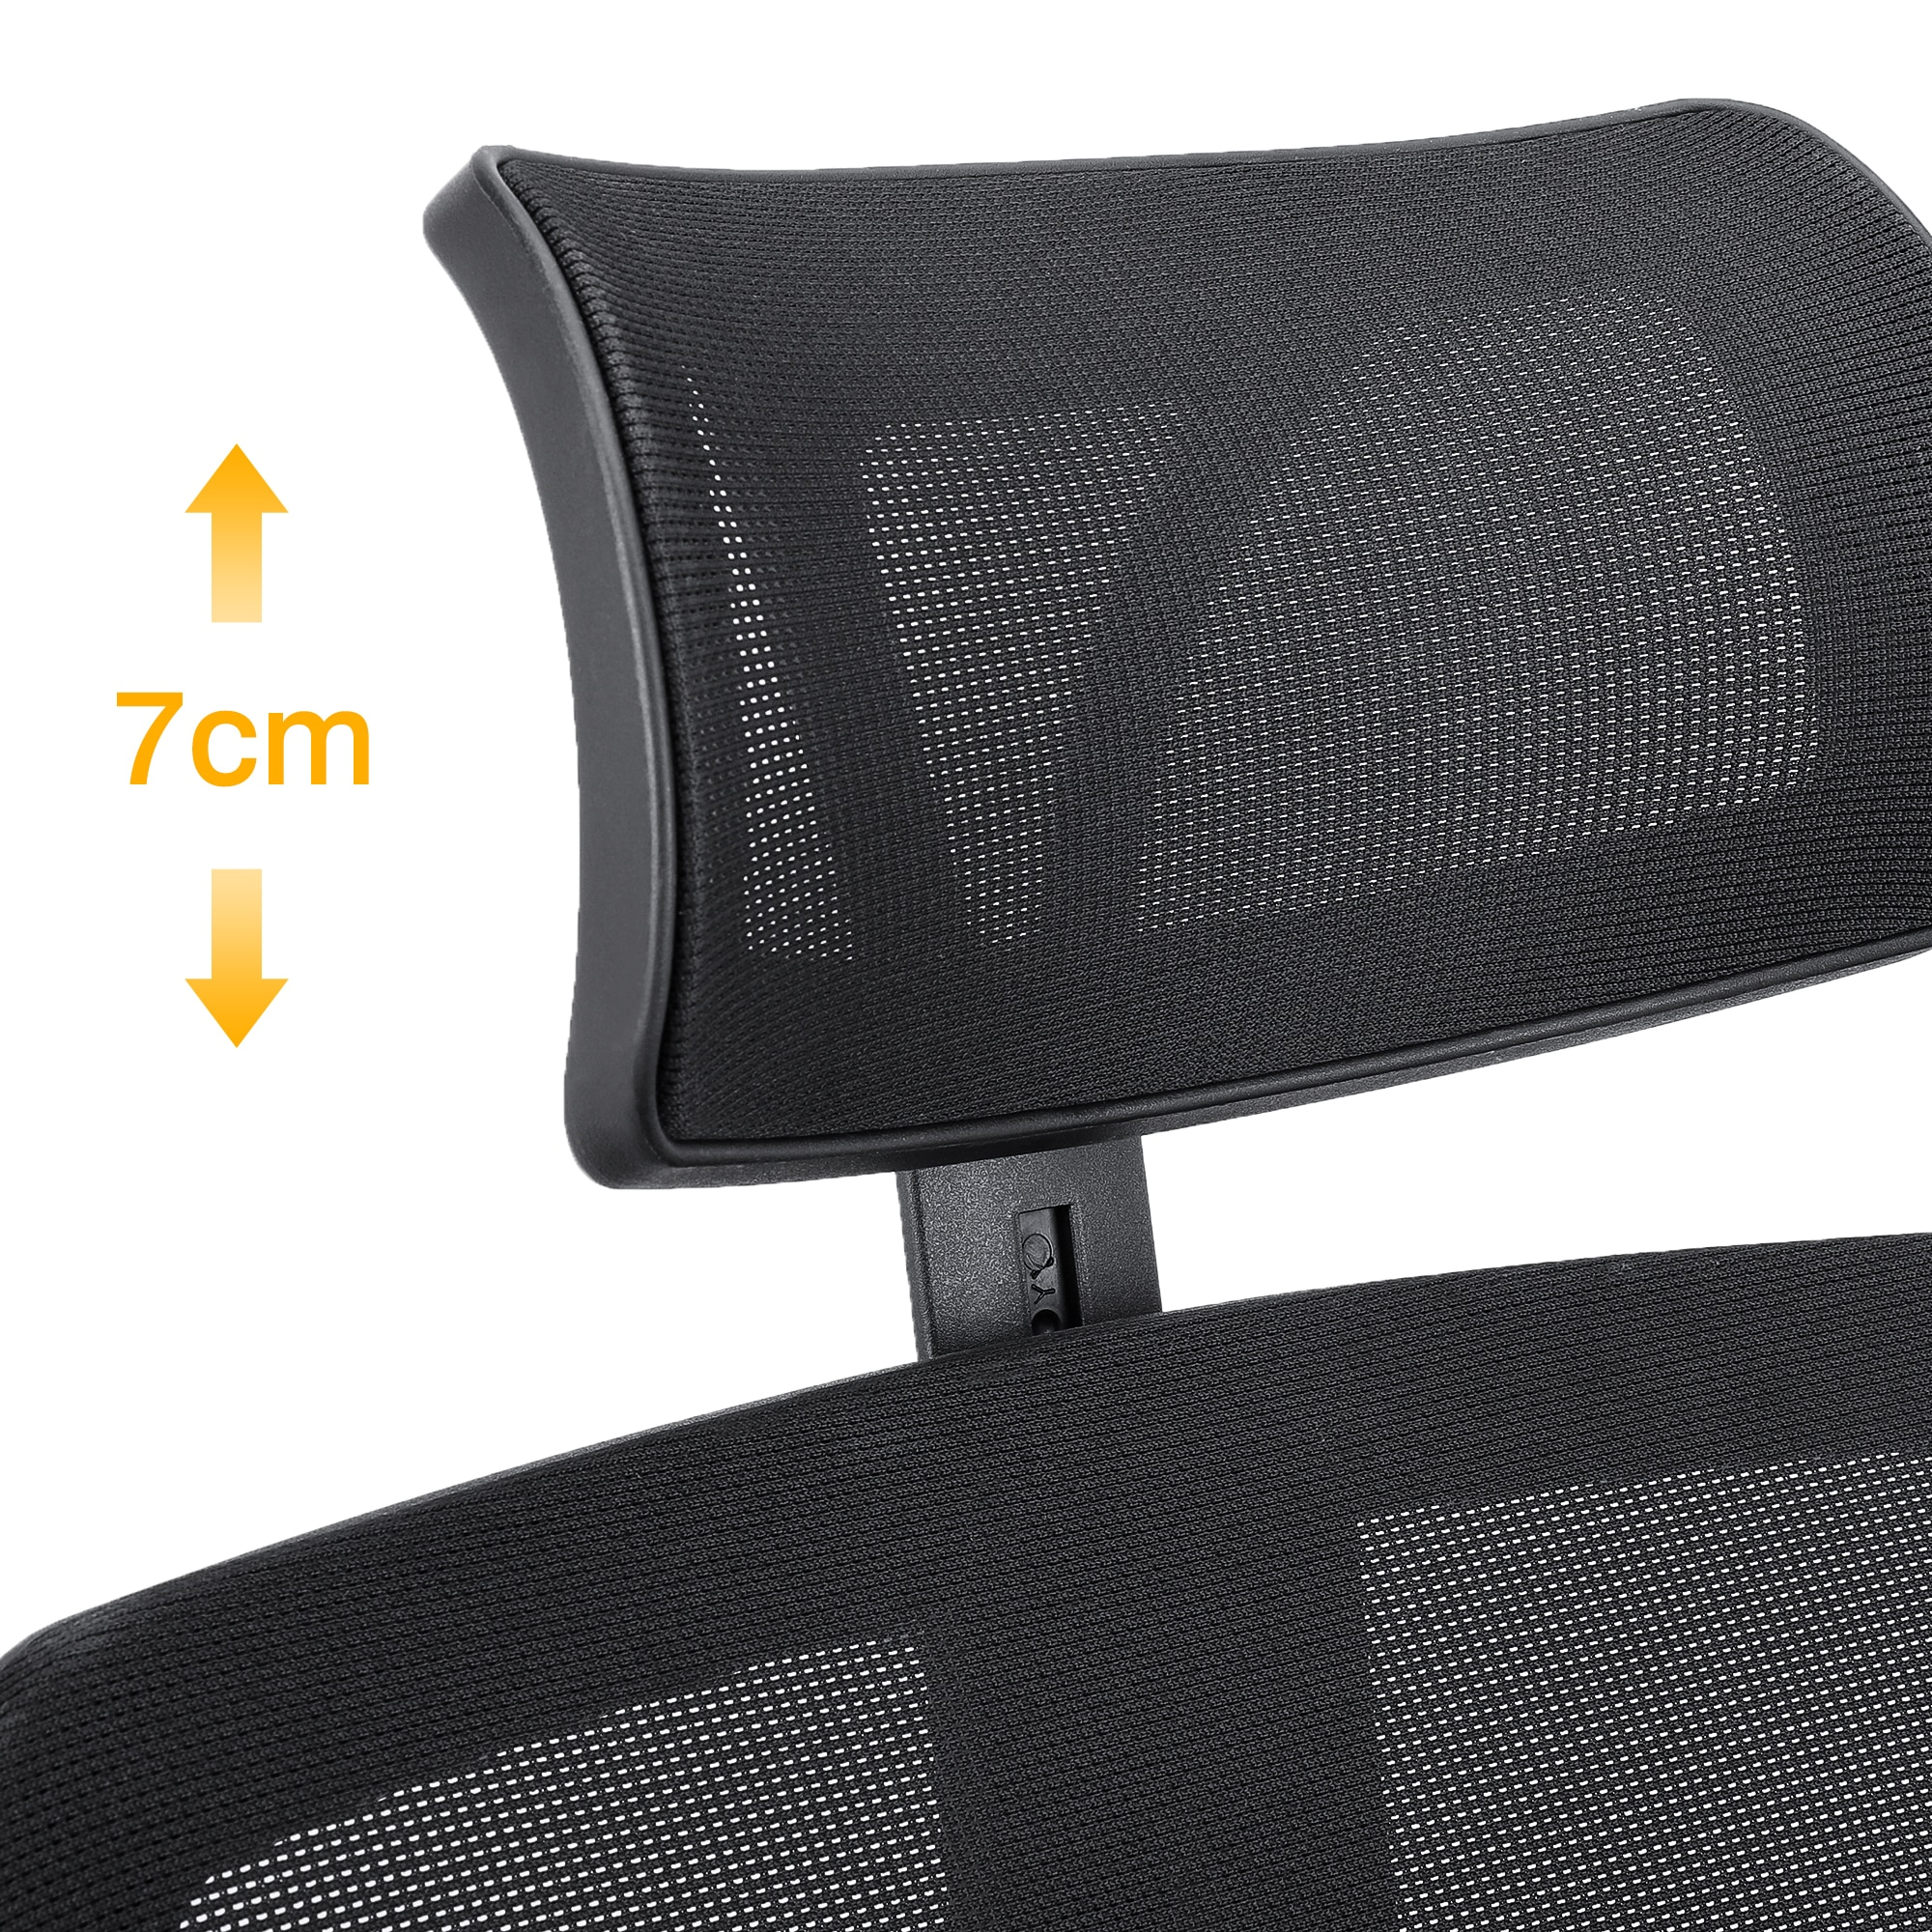 H65d83a21d6674d19af607079f065eec6Z - Sigtua Black Mesh Office Chair Ergonomic PC Chair Height-adjustable Executive Chair Desk Chair Swivel Office Computer Chair